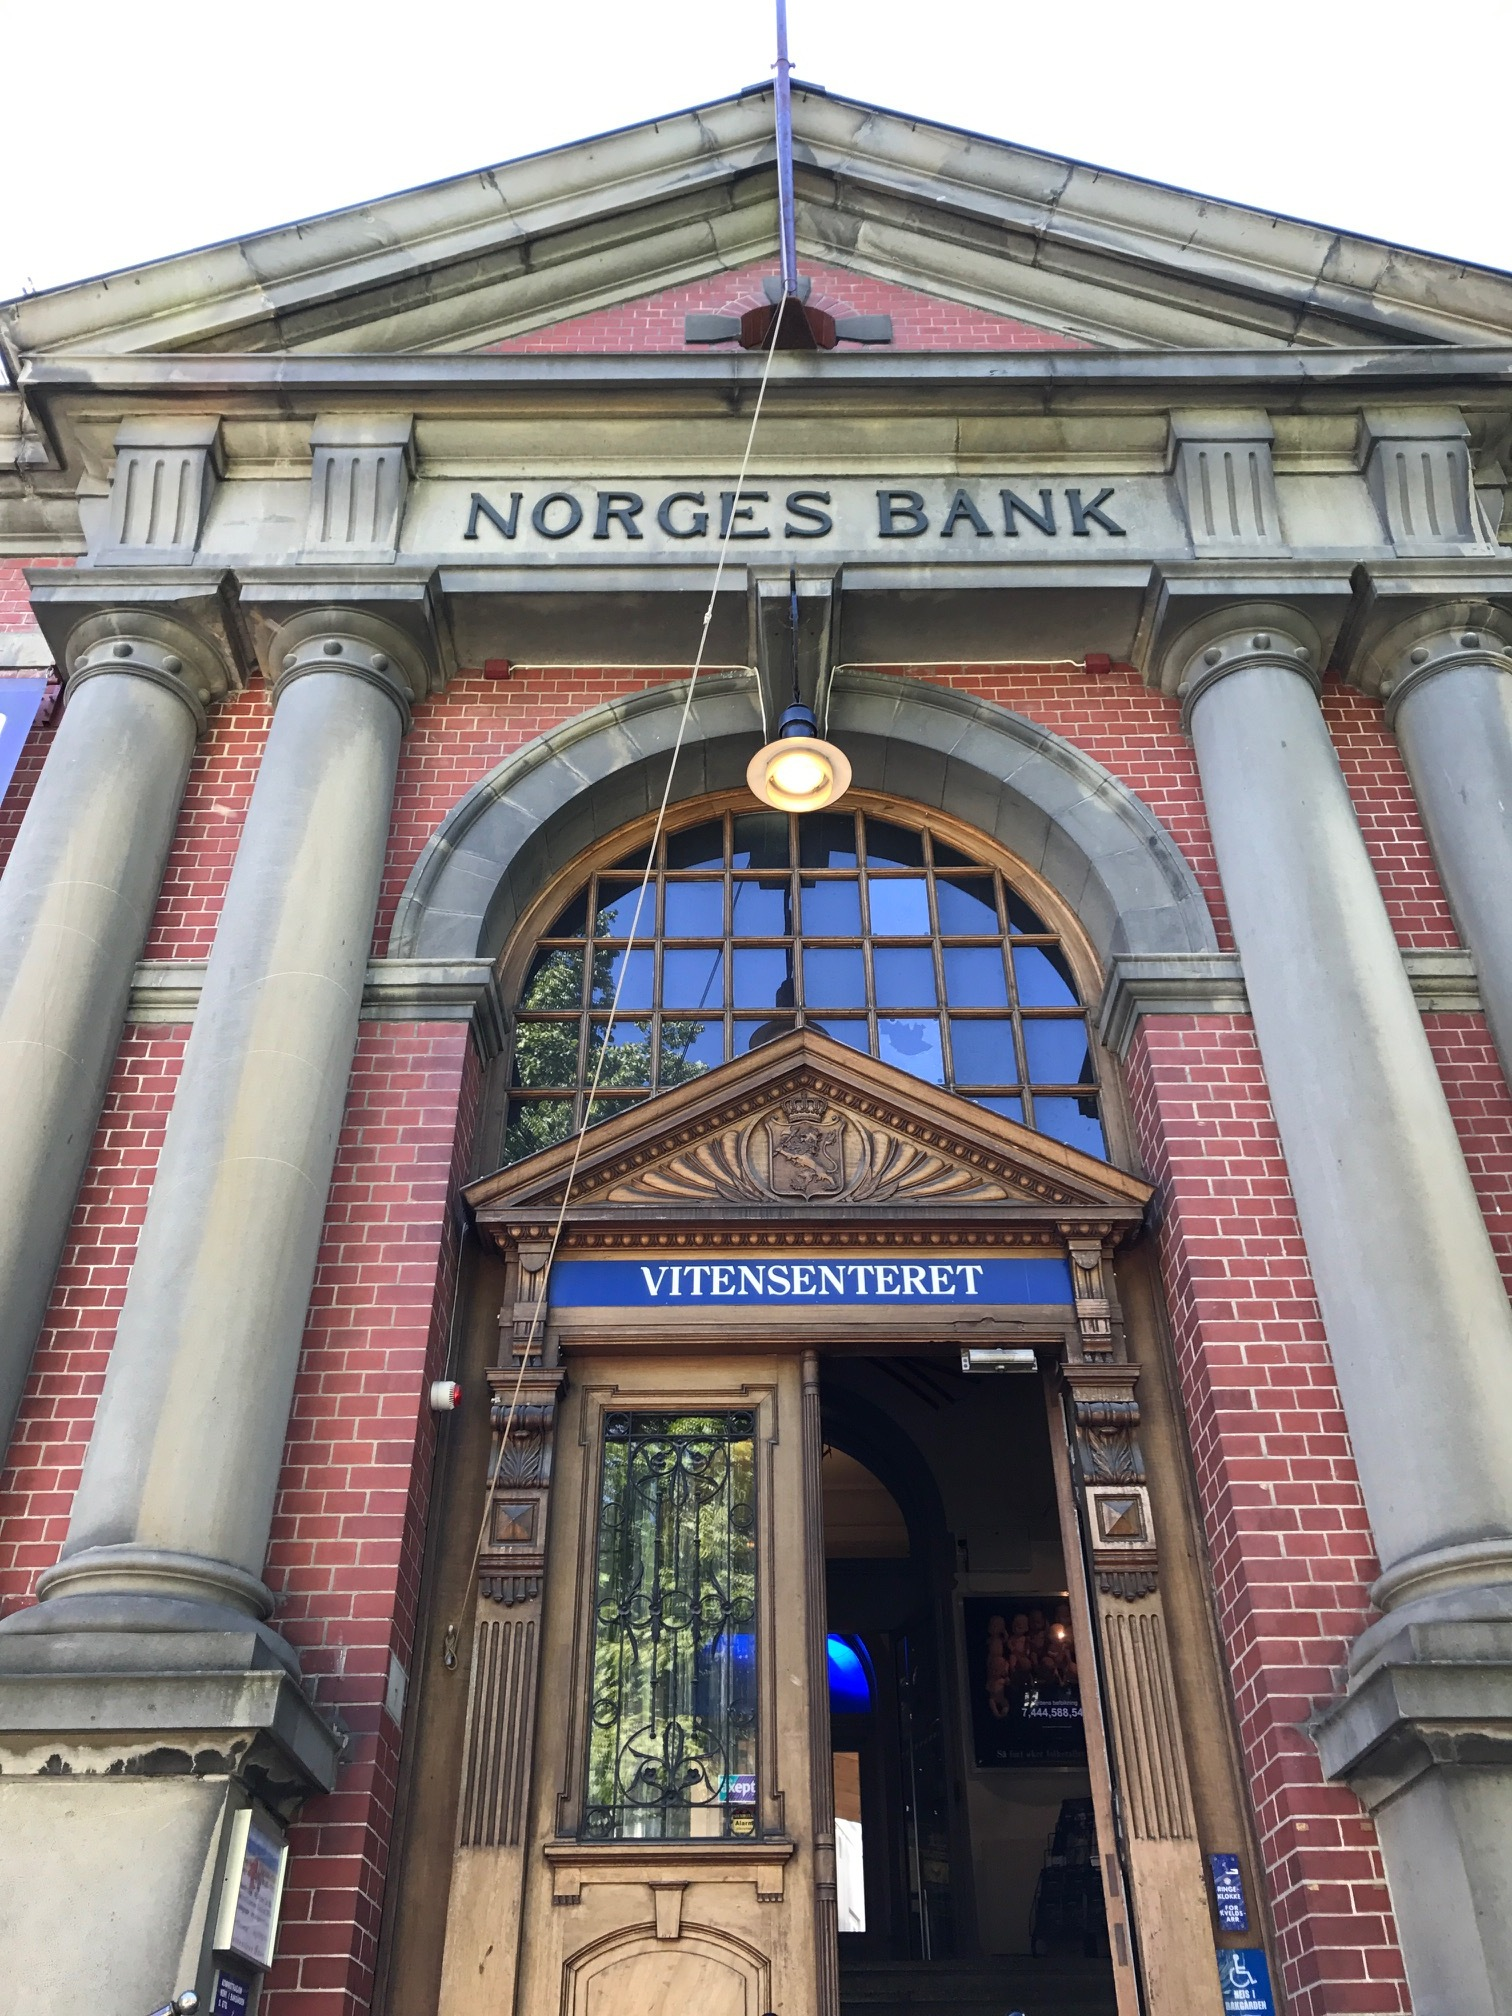 The building still says Norges Bank - although now it is the Vitensenteret- the Trondheim Science Museum